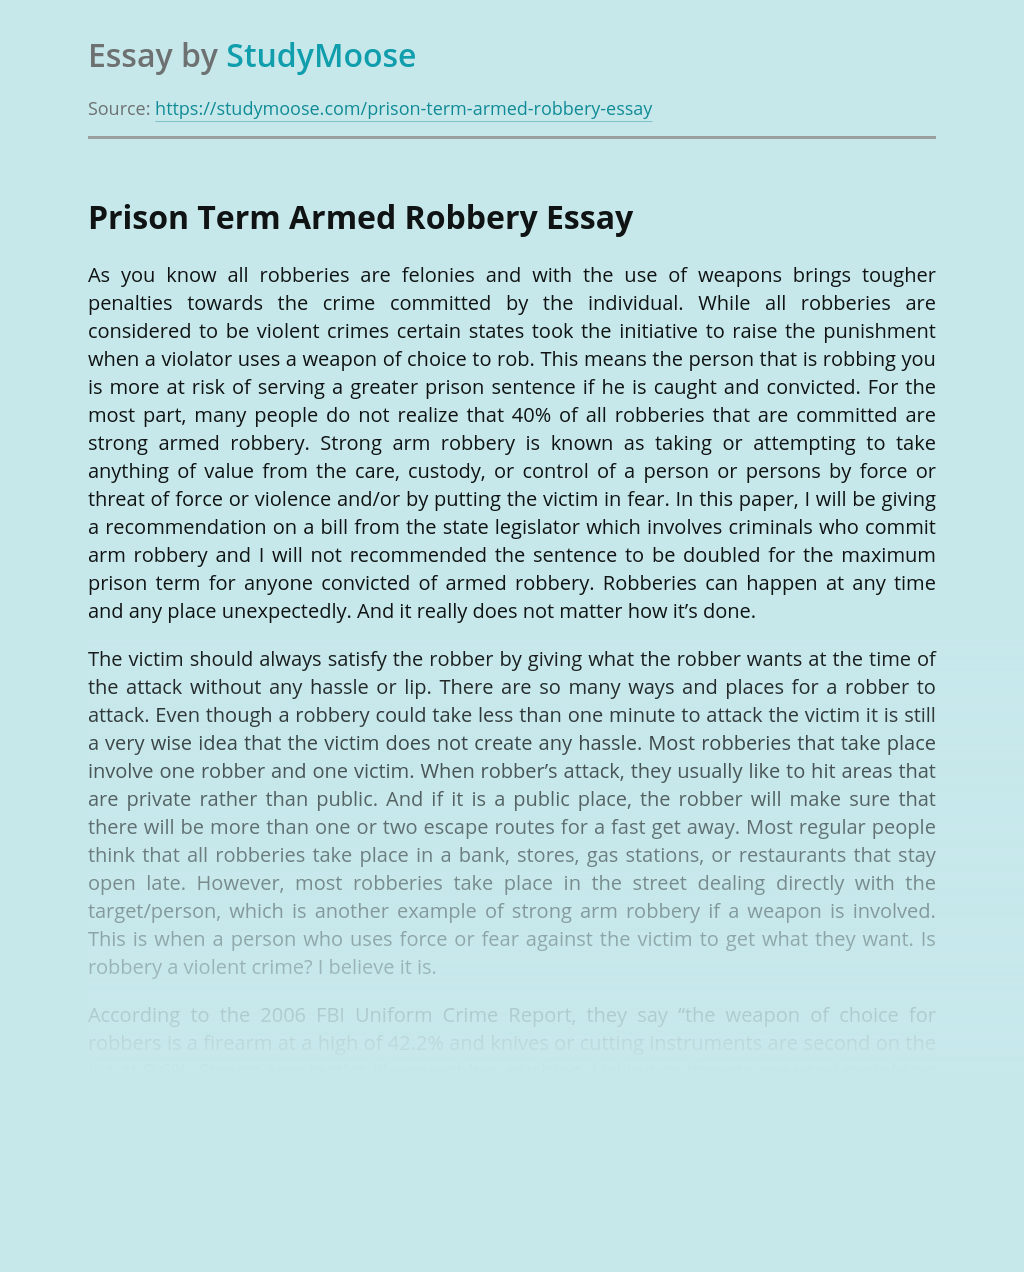 Armed robbery essay pay to write culture cover letter